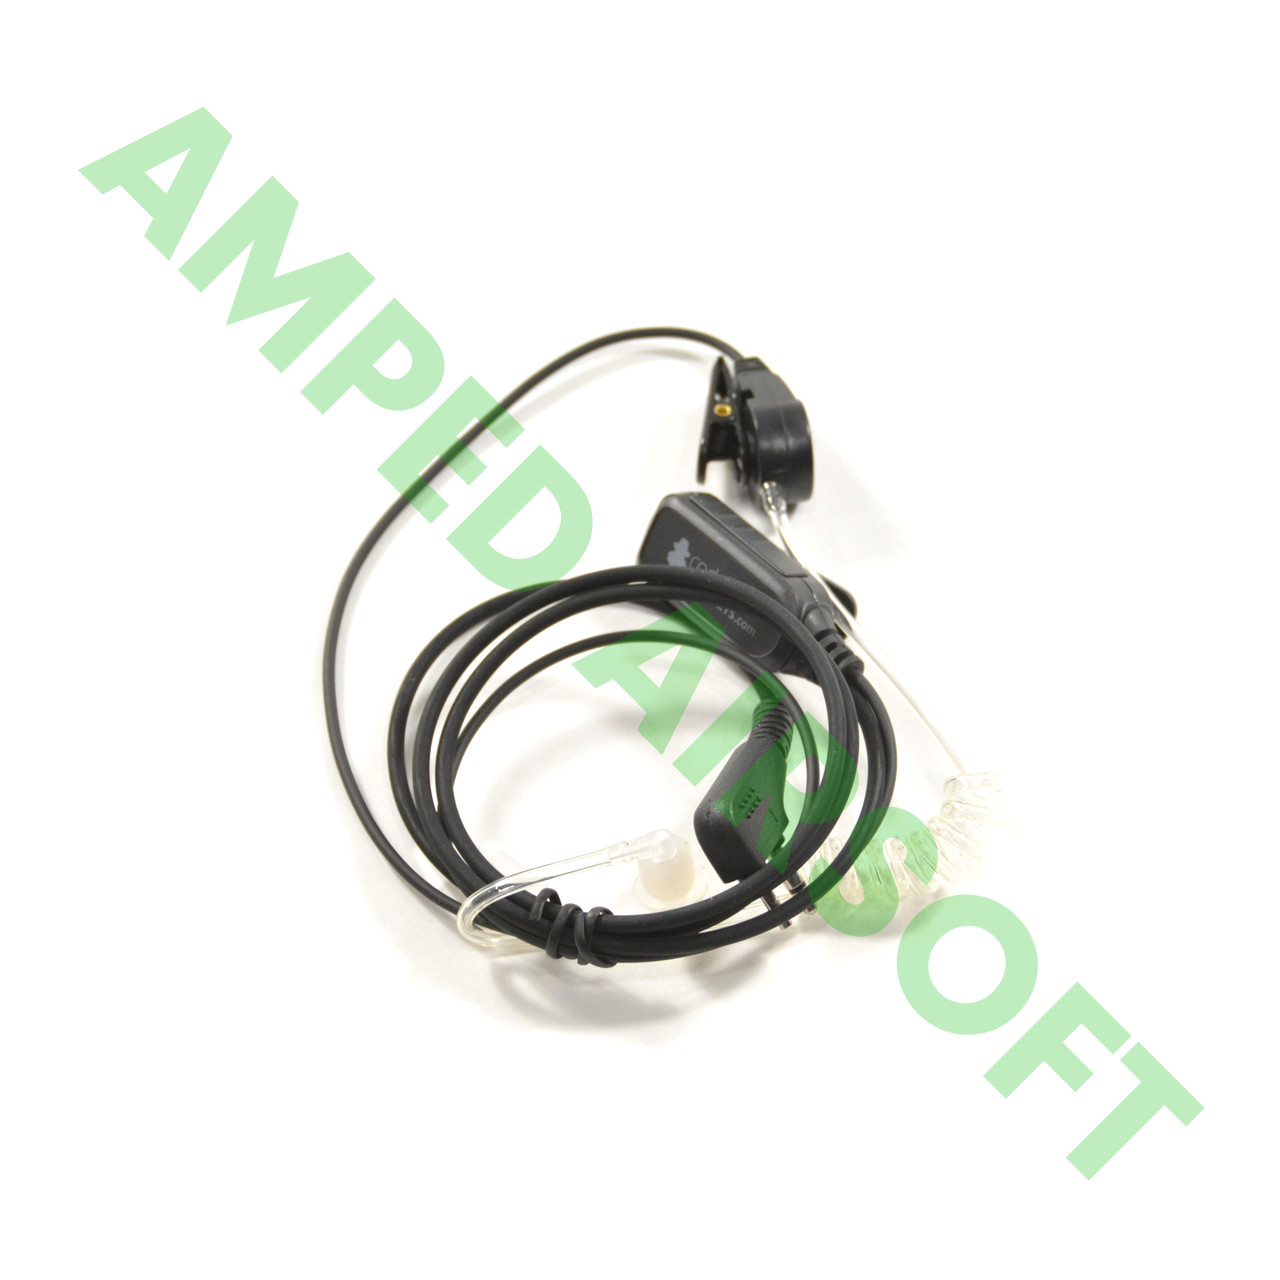 Code Red Headsets - Recruit-K Single Wire Mic with Acoustic Tube Earpiece (Kenwood with a 2 Pin connector)